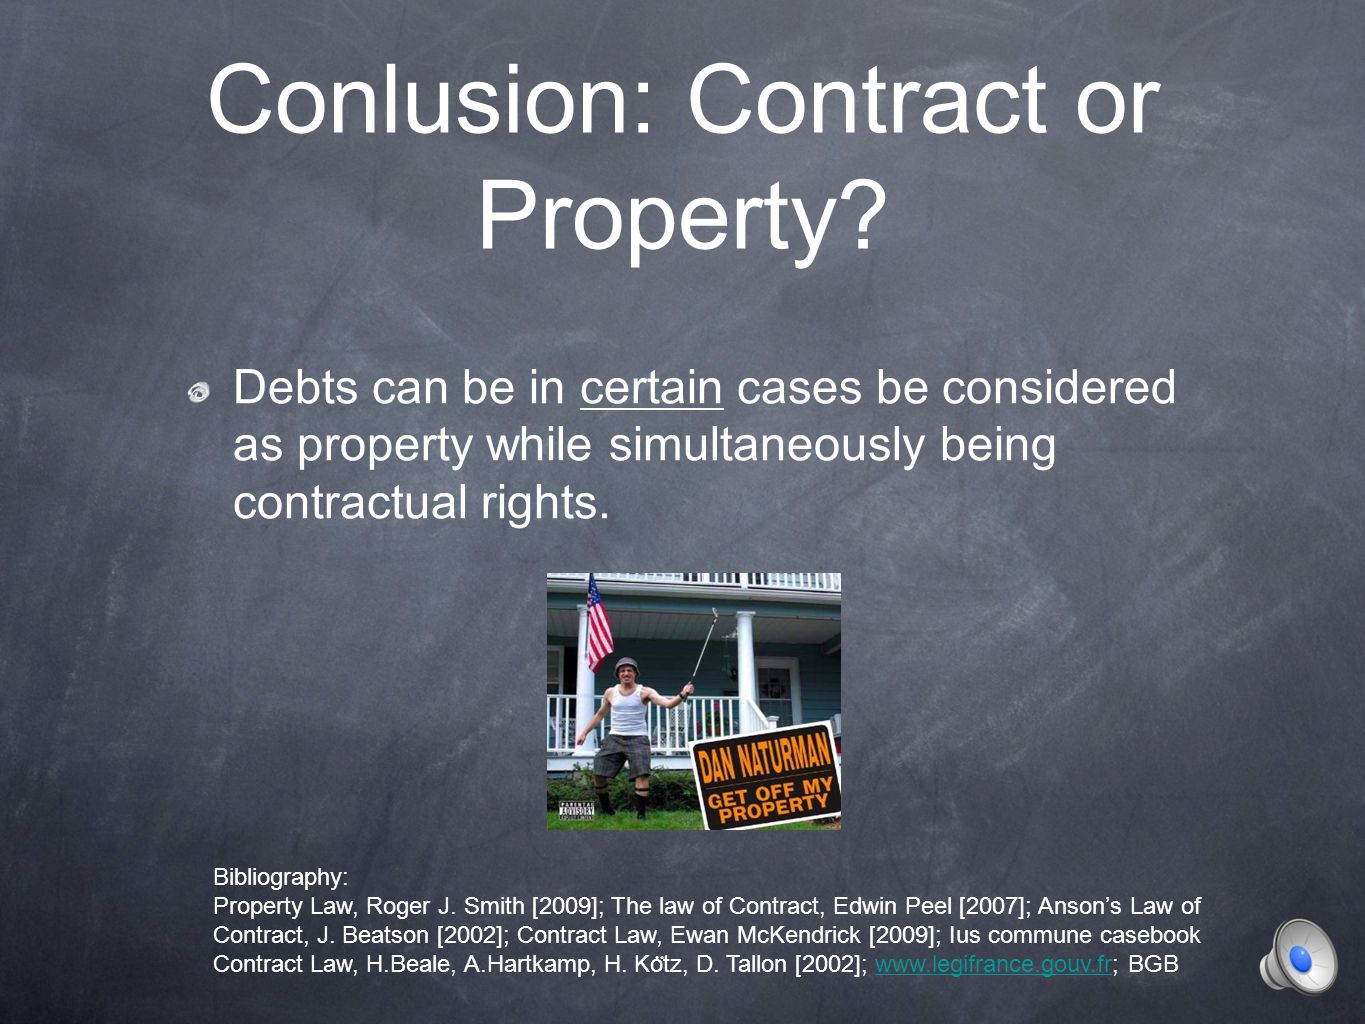 Conlusion: Contract or Property.